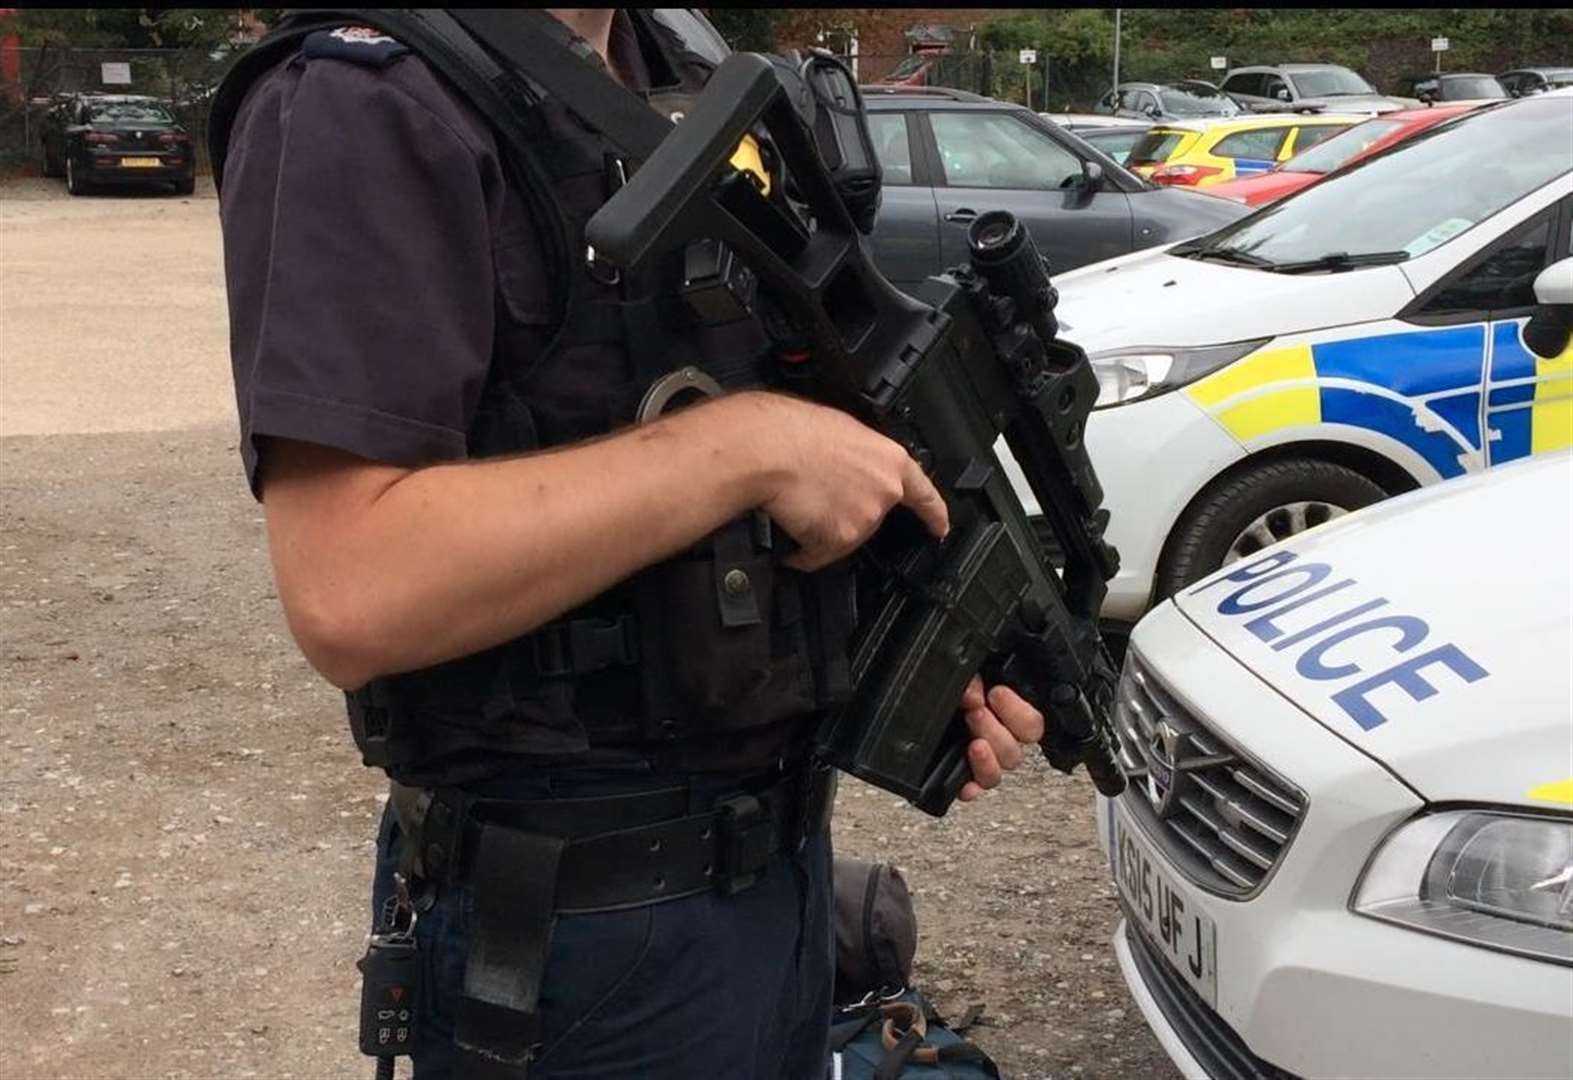 Man faces jail after armed stand off